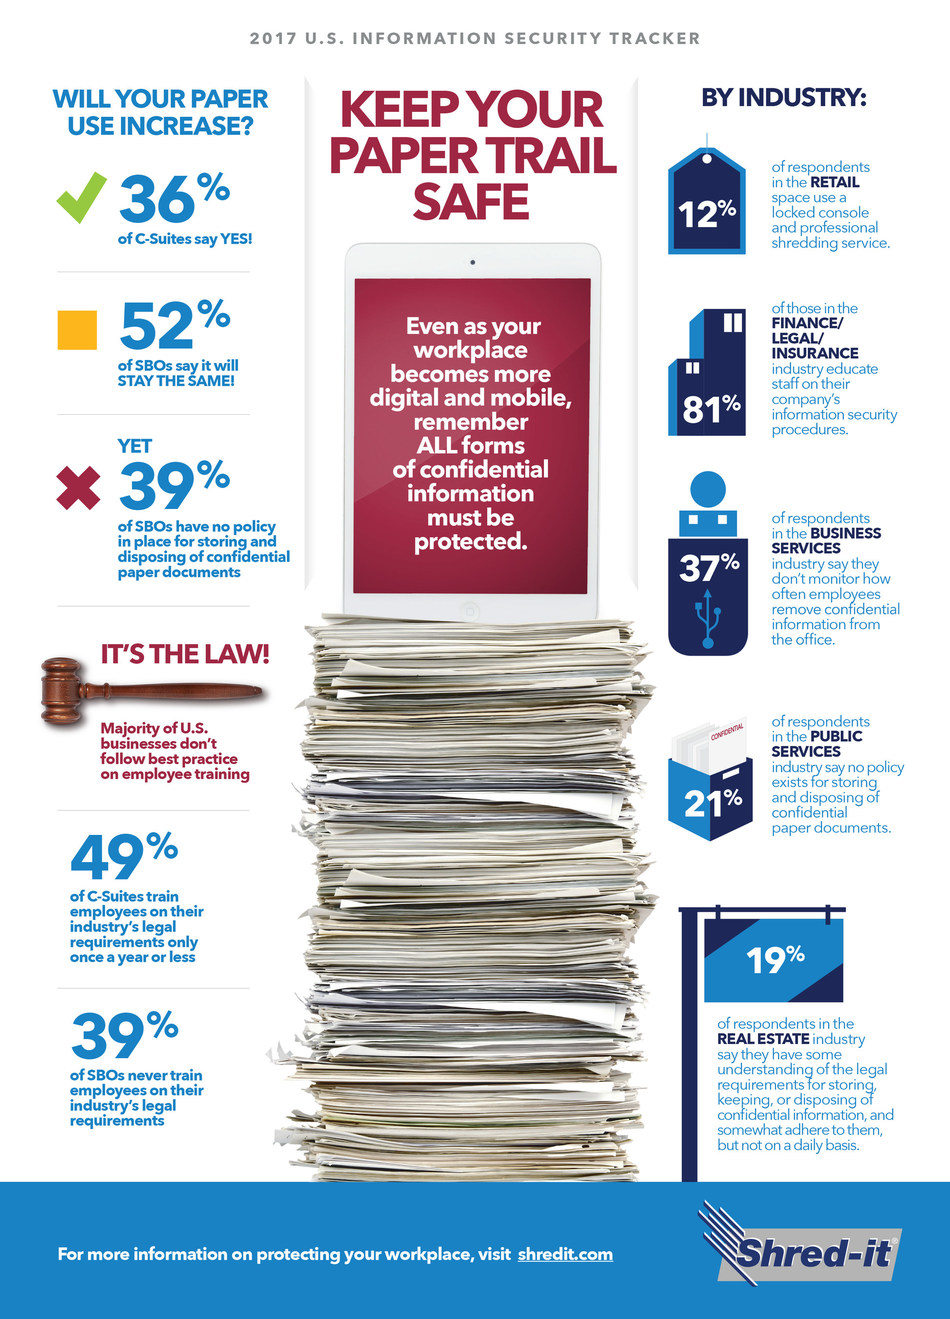 Shred-it 2017 Security Tracker Infographic (CNW Group/Shred-it)